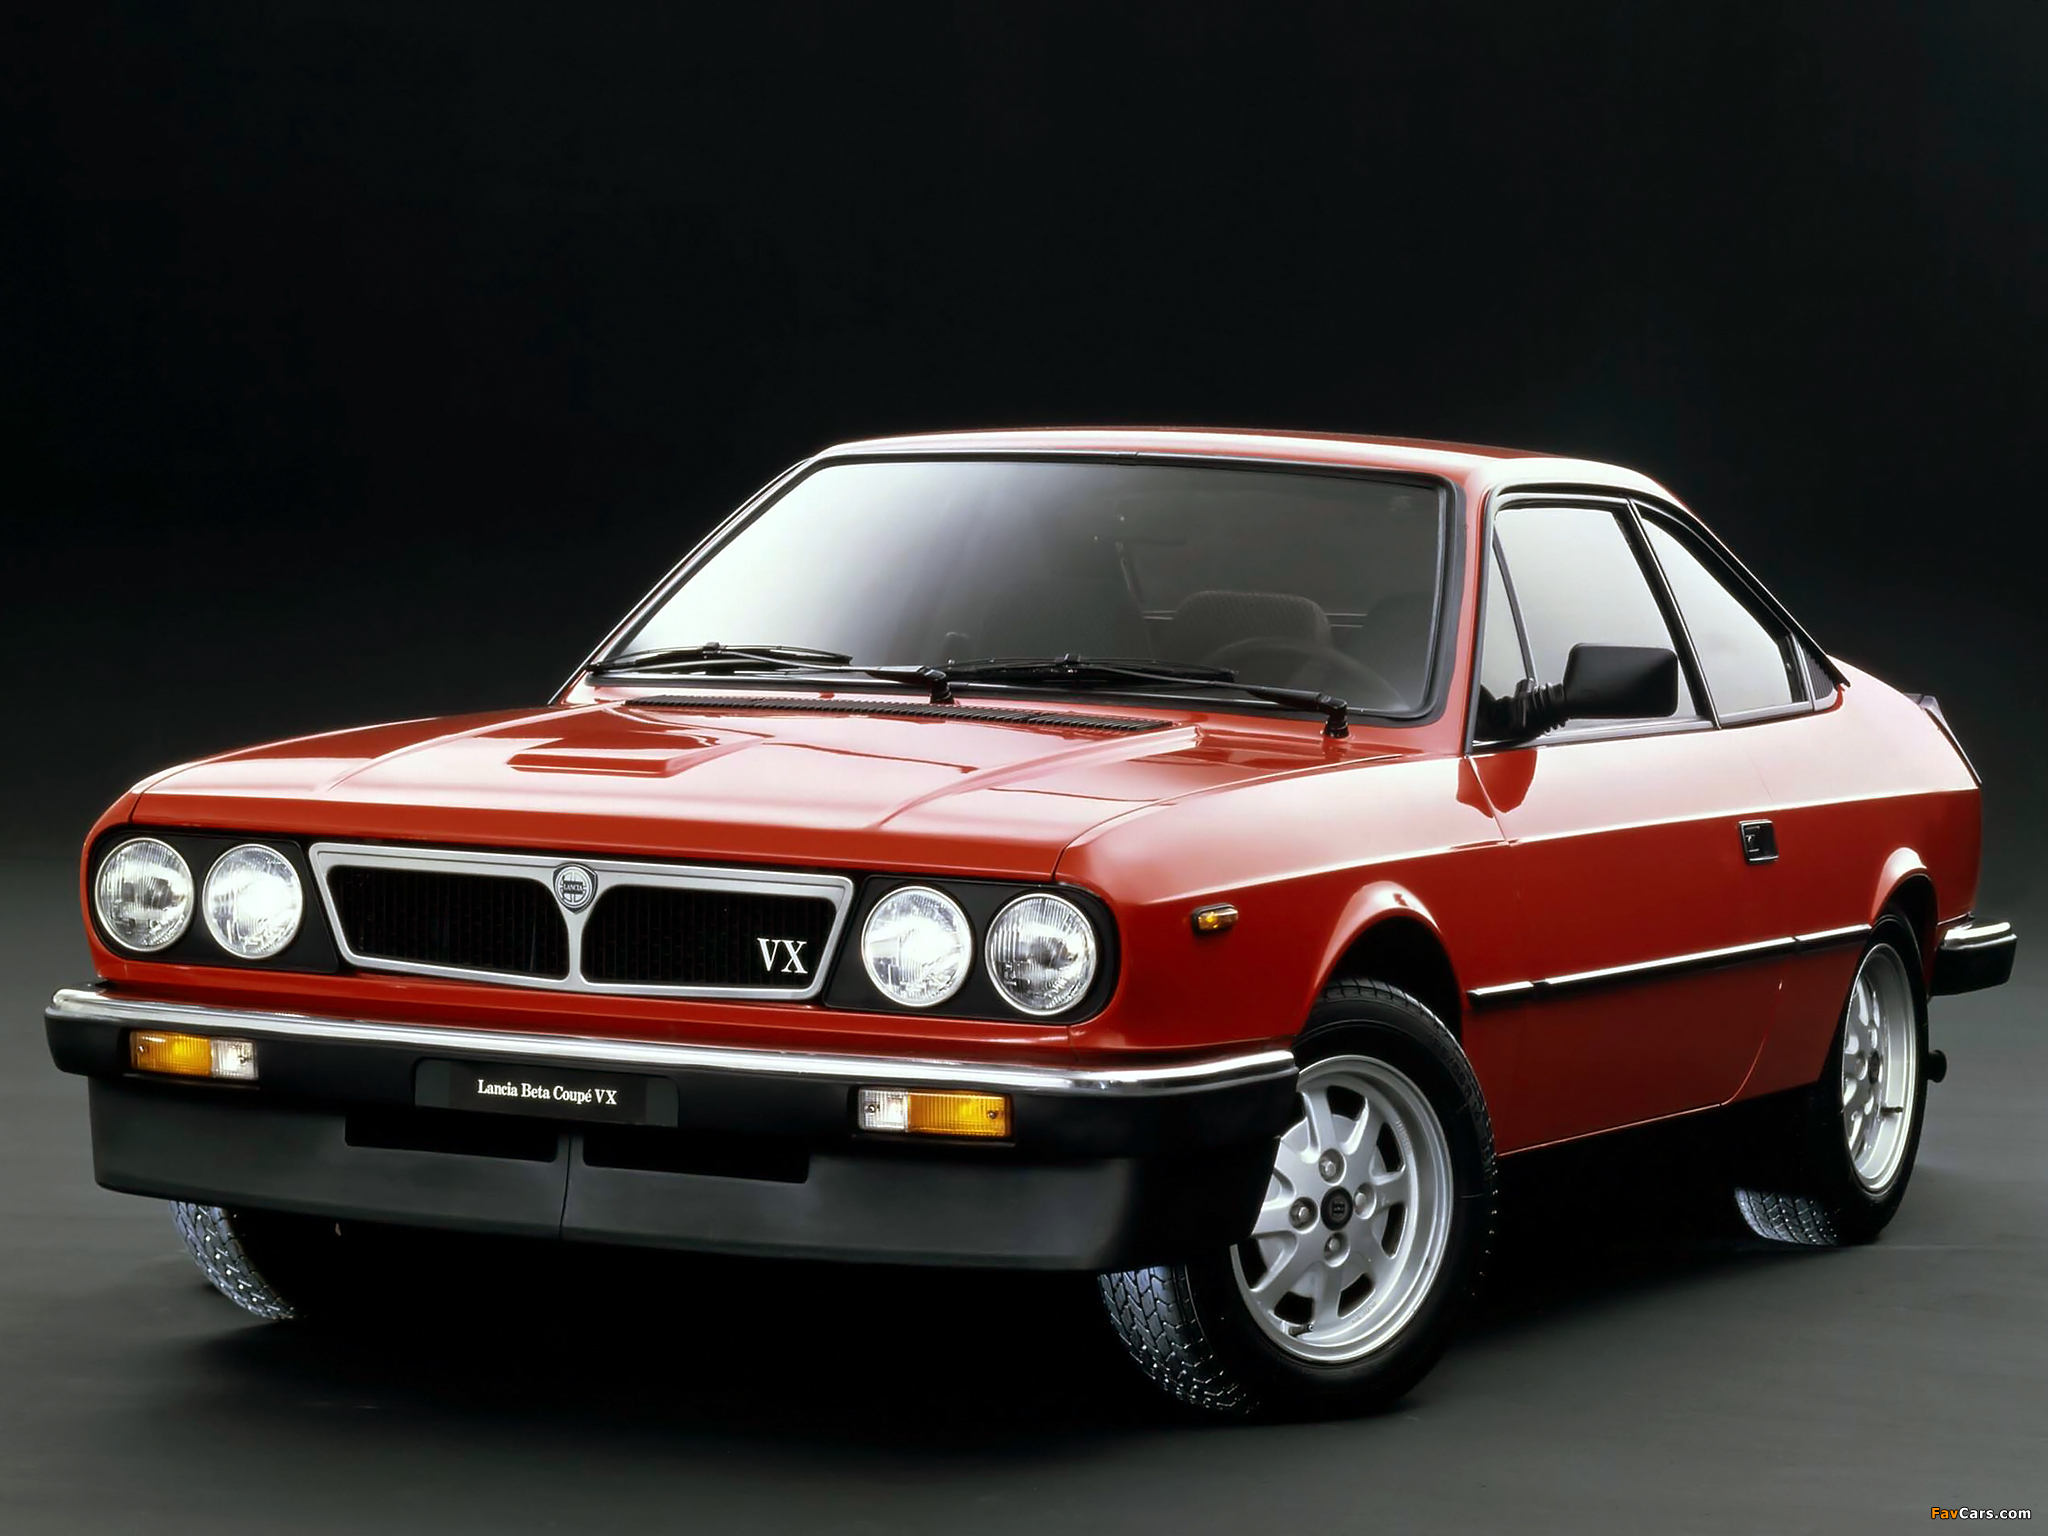 All Car Wallpaper Download Pictures Of Lancia Beta Coupe Vx 4 Serie 1982 84 2048x1536